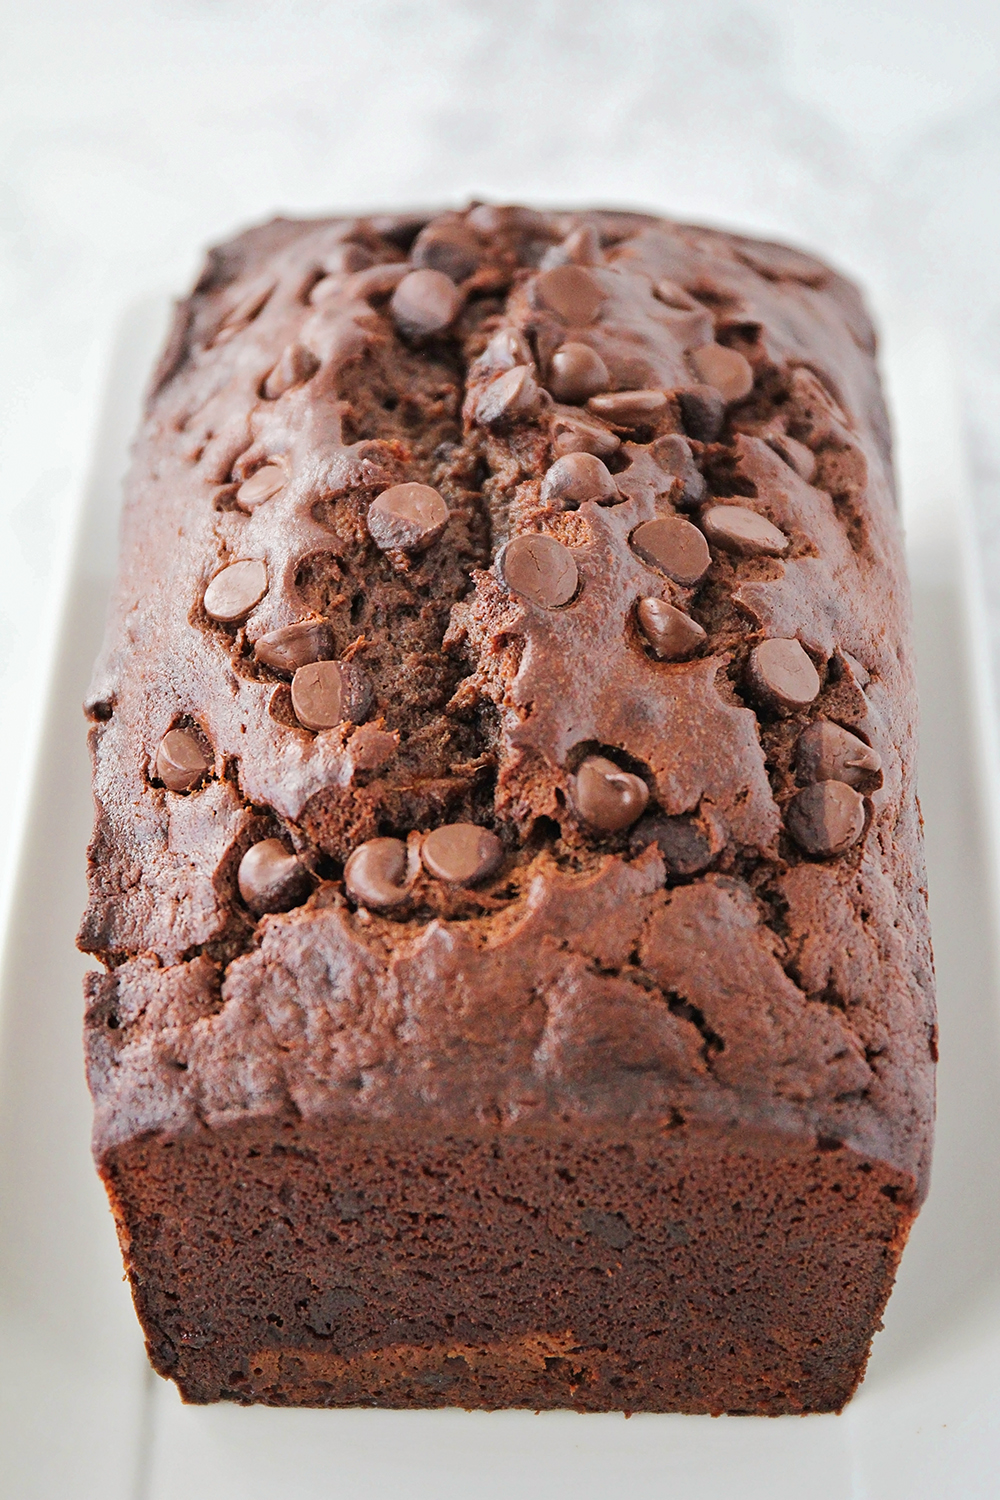 This rich and delicious chocolate banana bread has the perfect soft texture!